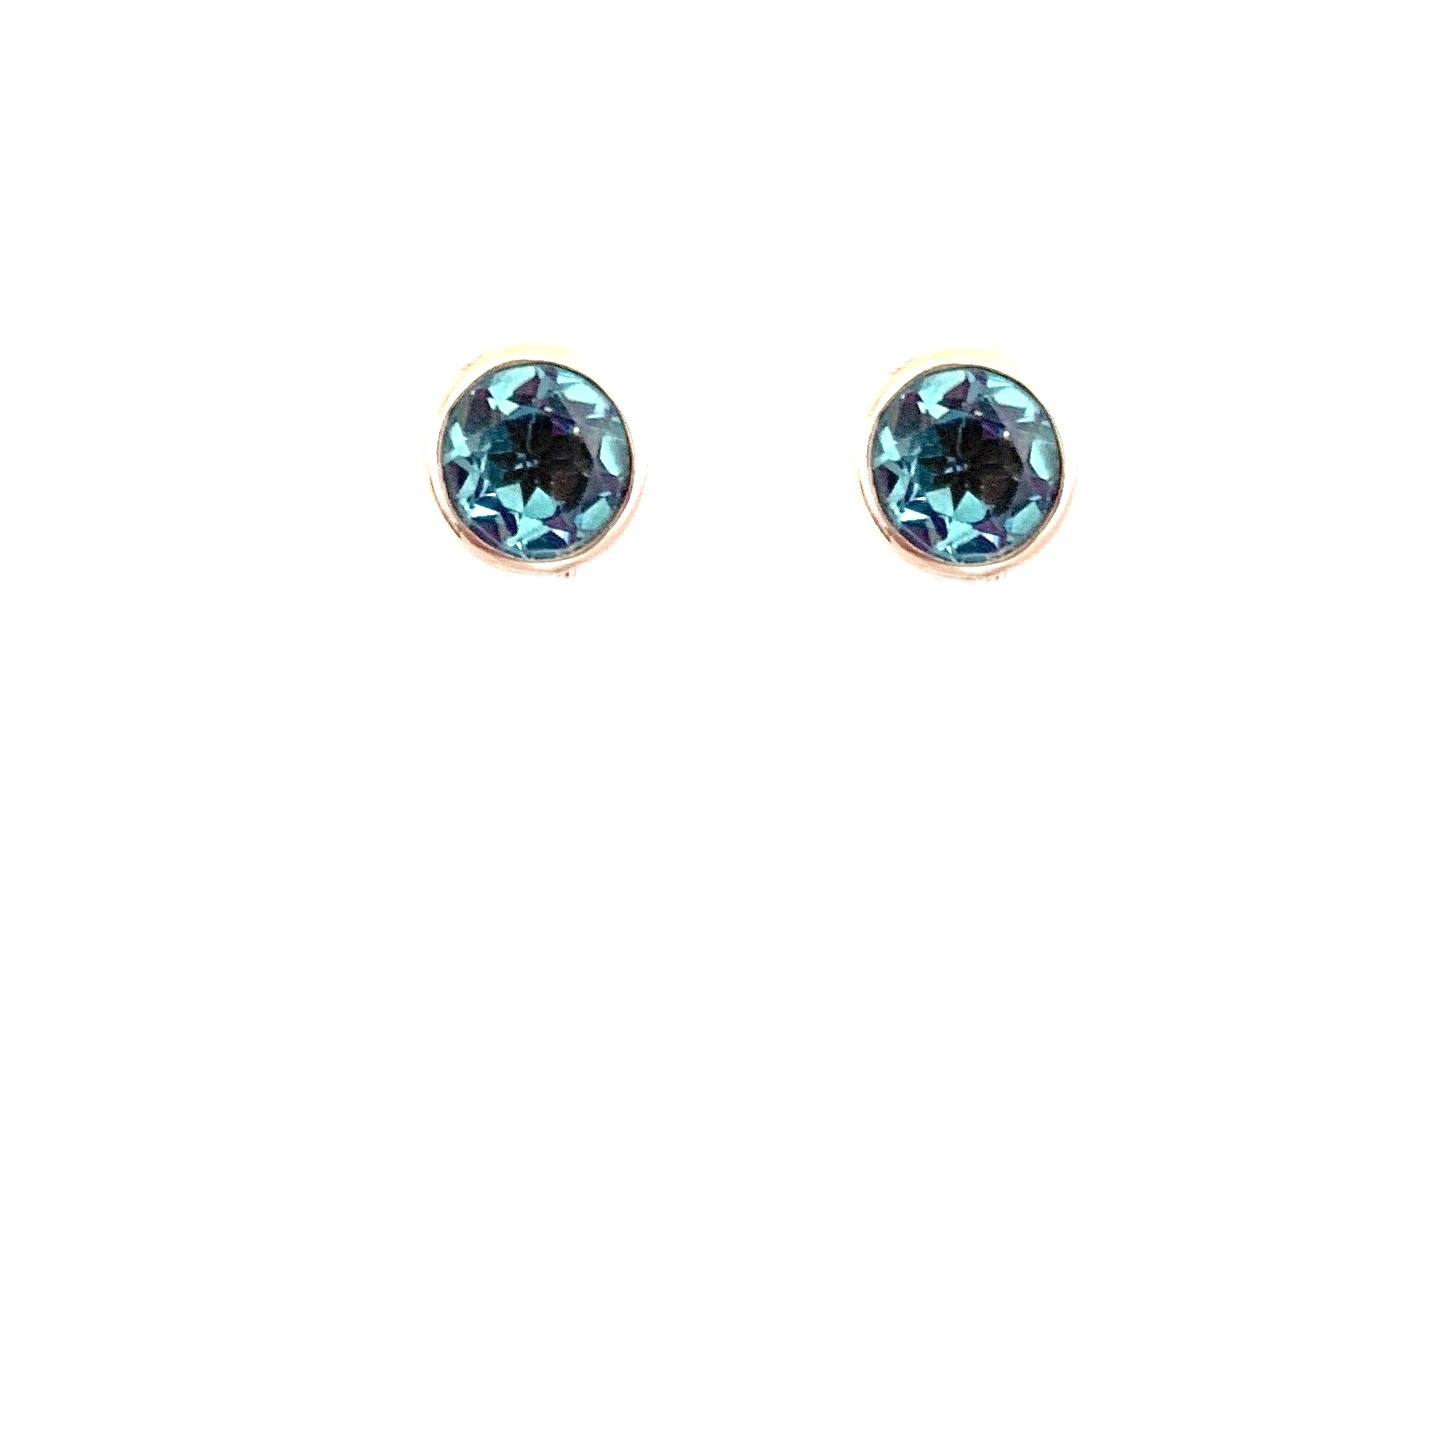 Kiliaan collectie Earrings sleeping beauty turquoise and blue topaz